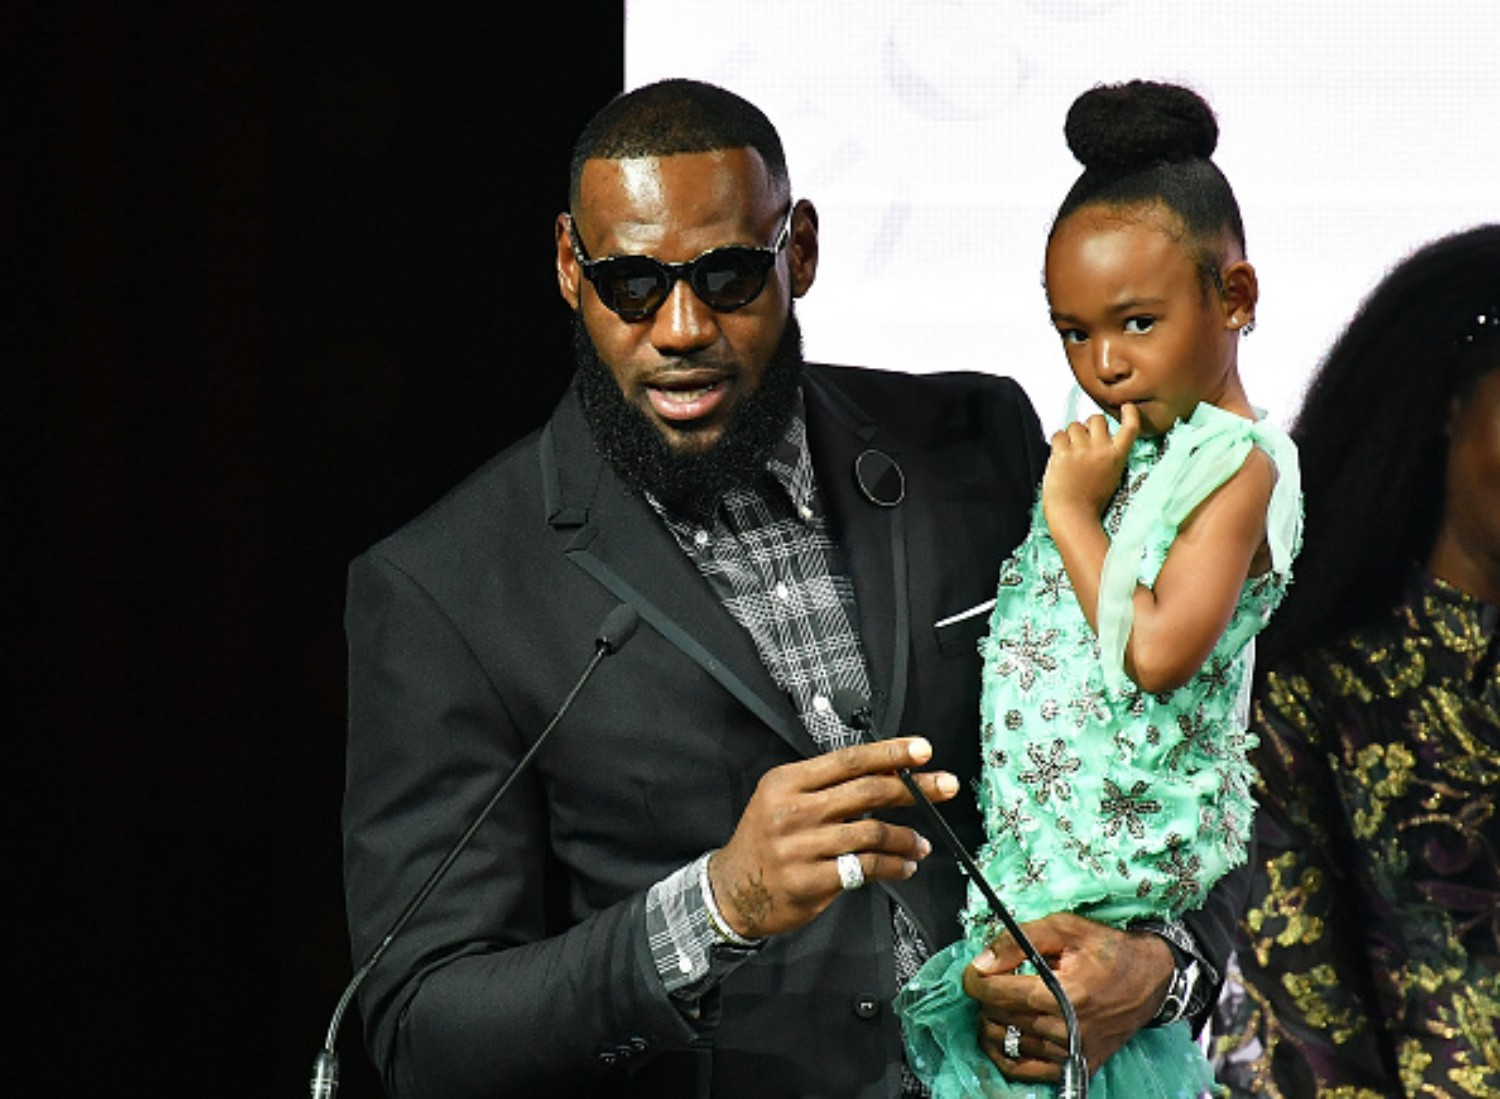 LeBron James gifted his daughter with a mini house for her birthday